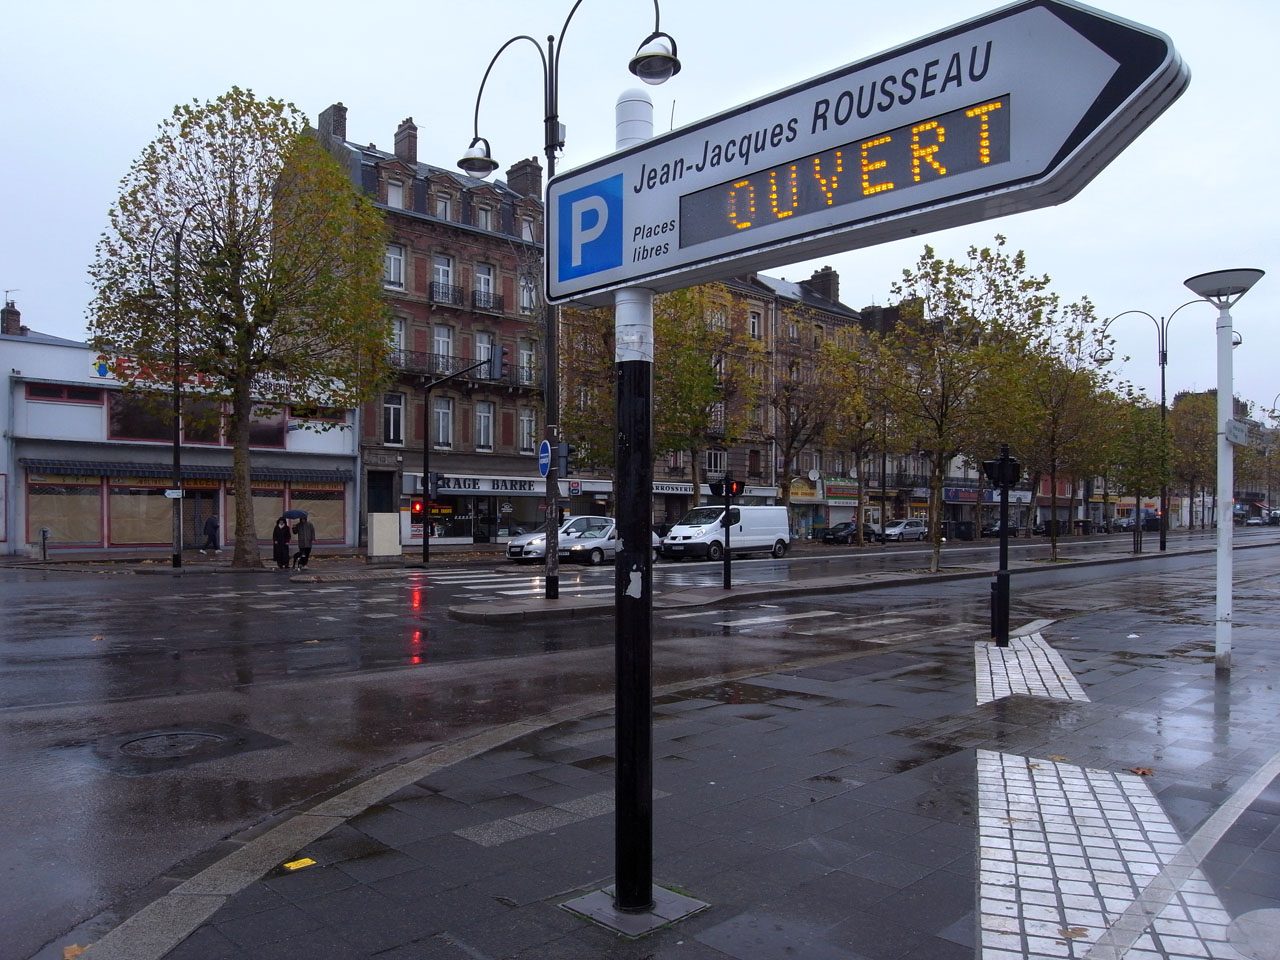 le-havre-rousseau